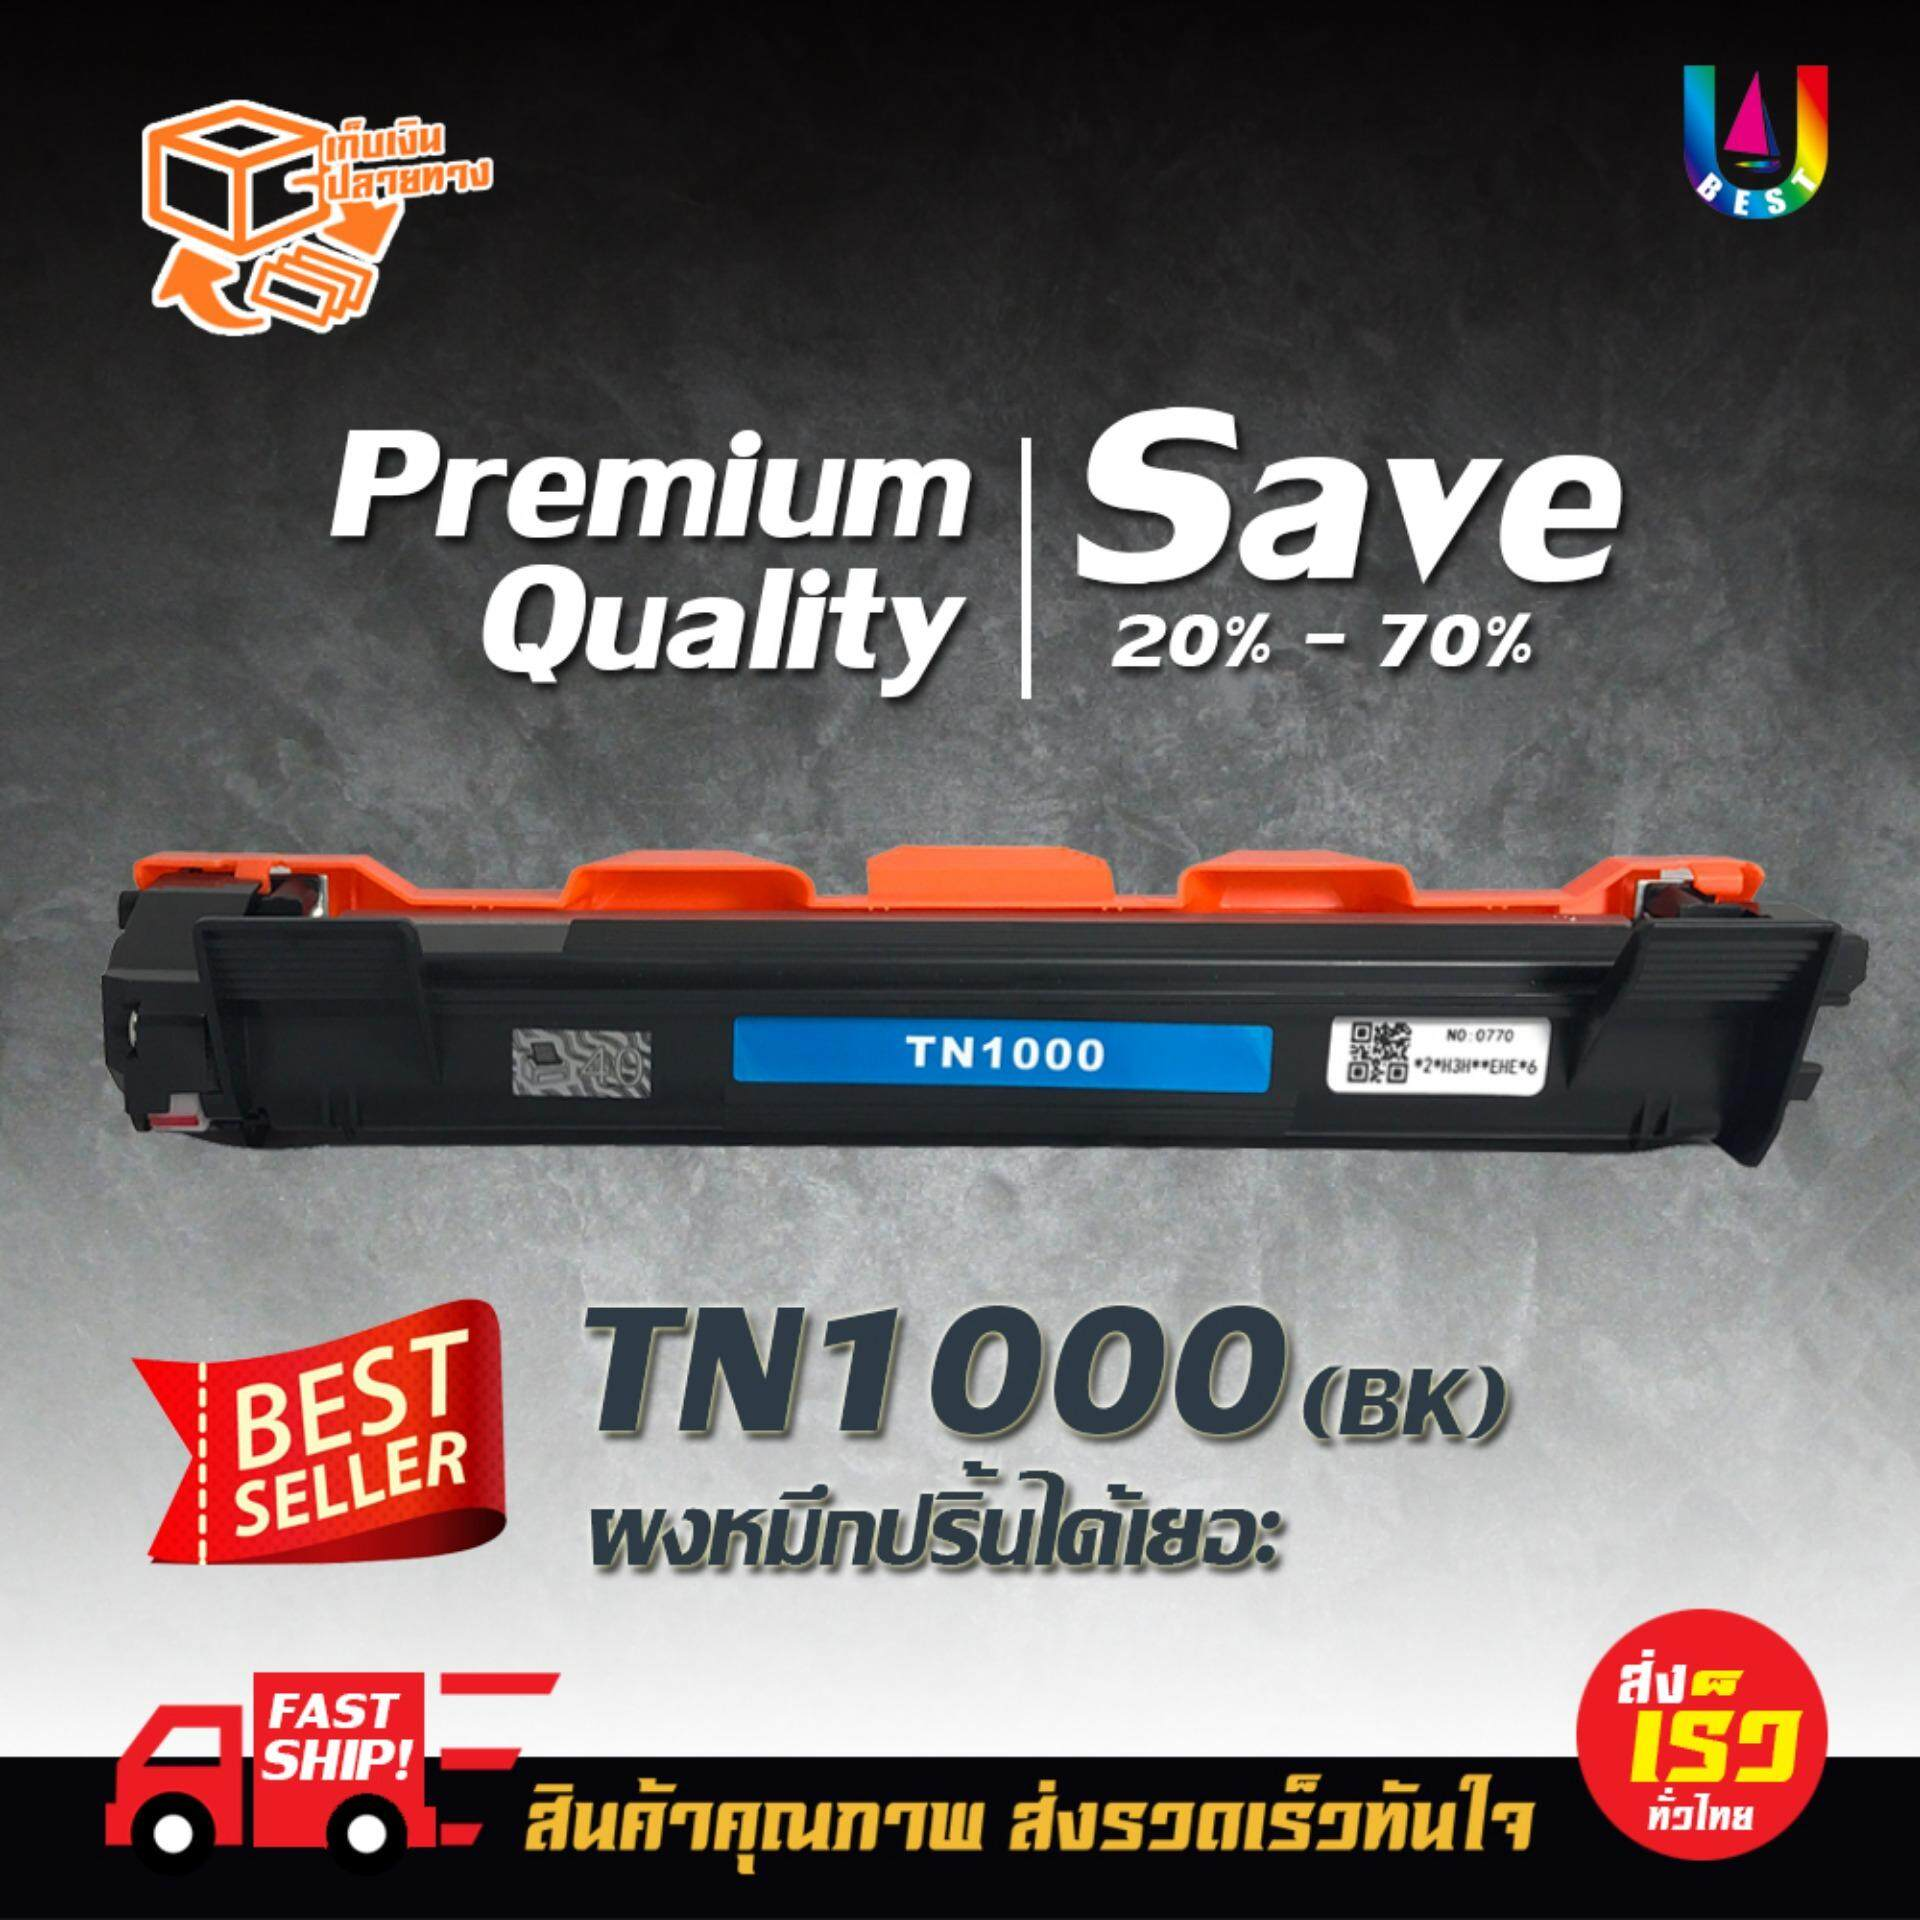 ซื้อ Axis Brother 1000 Tn 1000 Tn1000 For For Printer Brother Hl 1110 1210W Dcp 1510 1610W Mfc 1810 1815 1910W Best4U กรุงเทพมหานคร